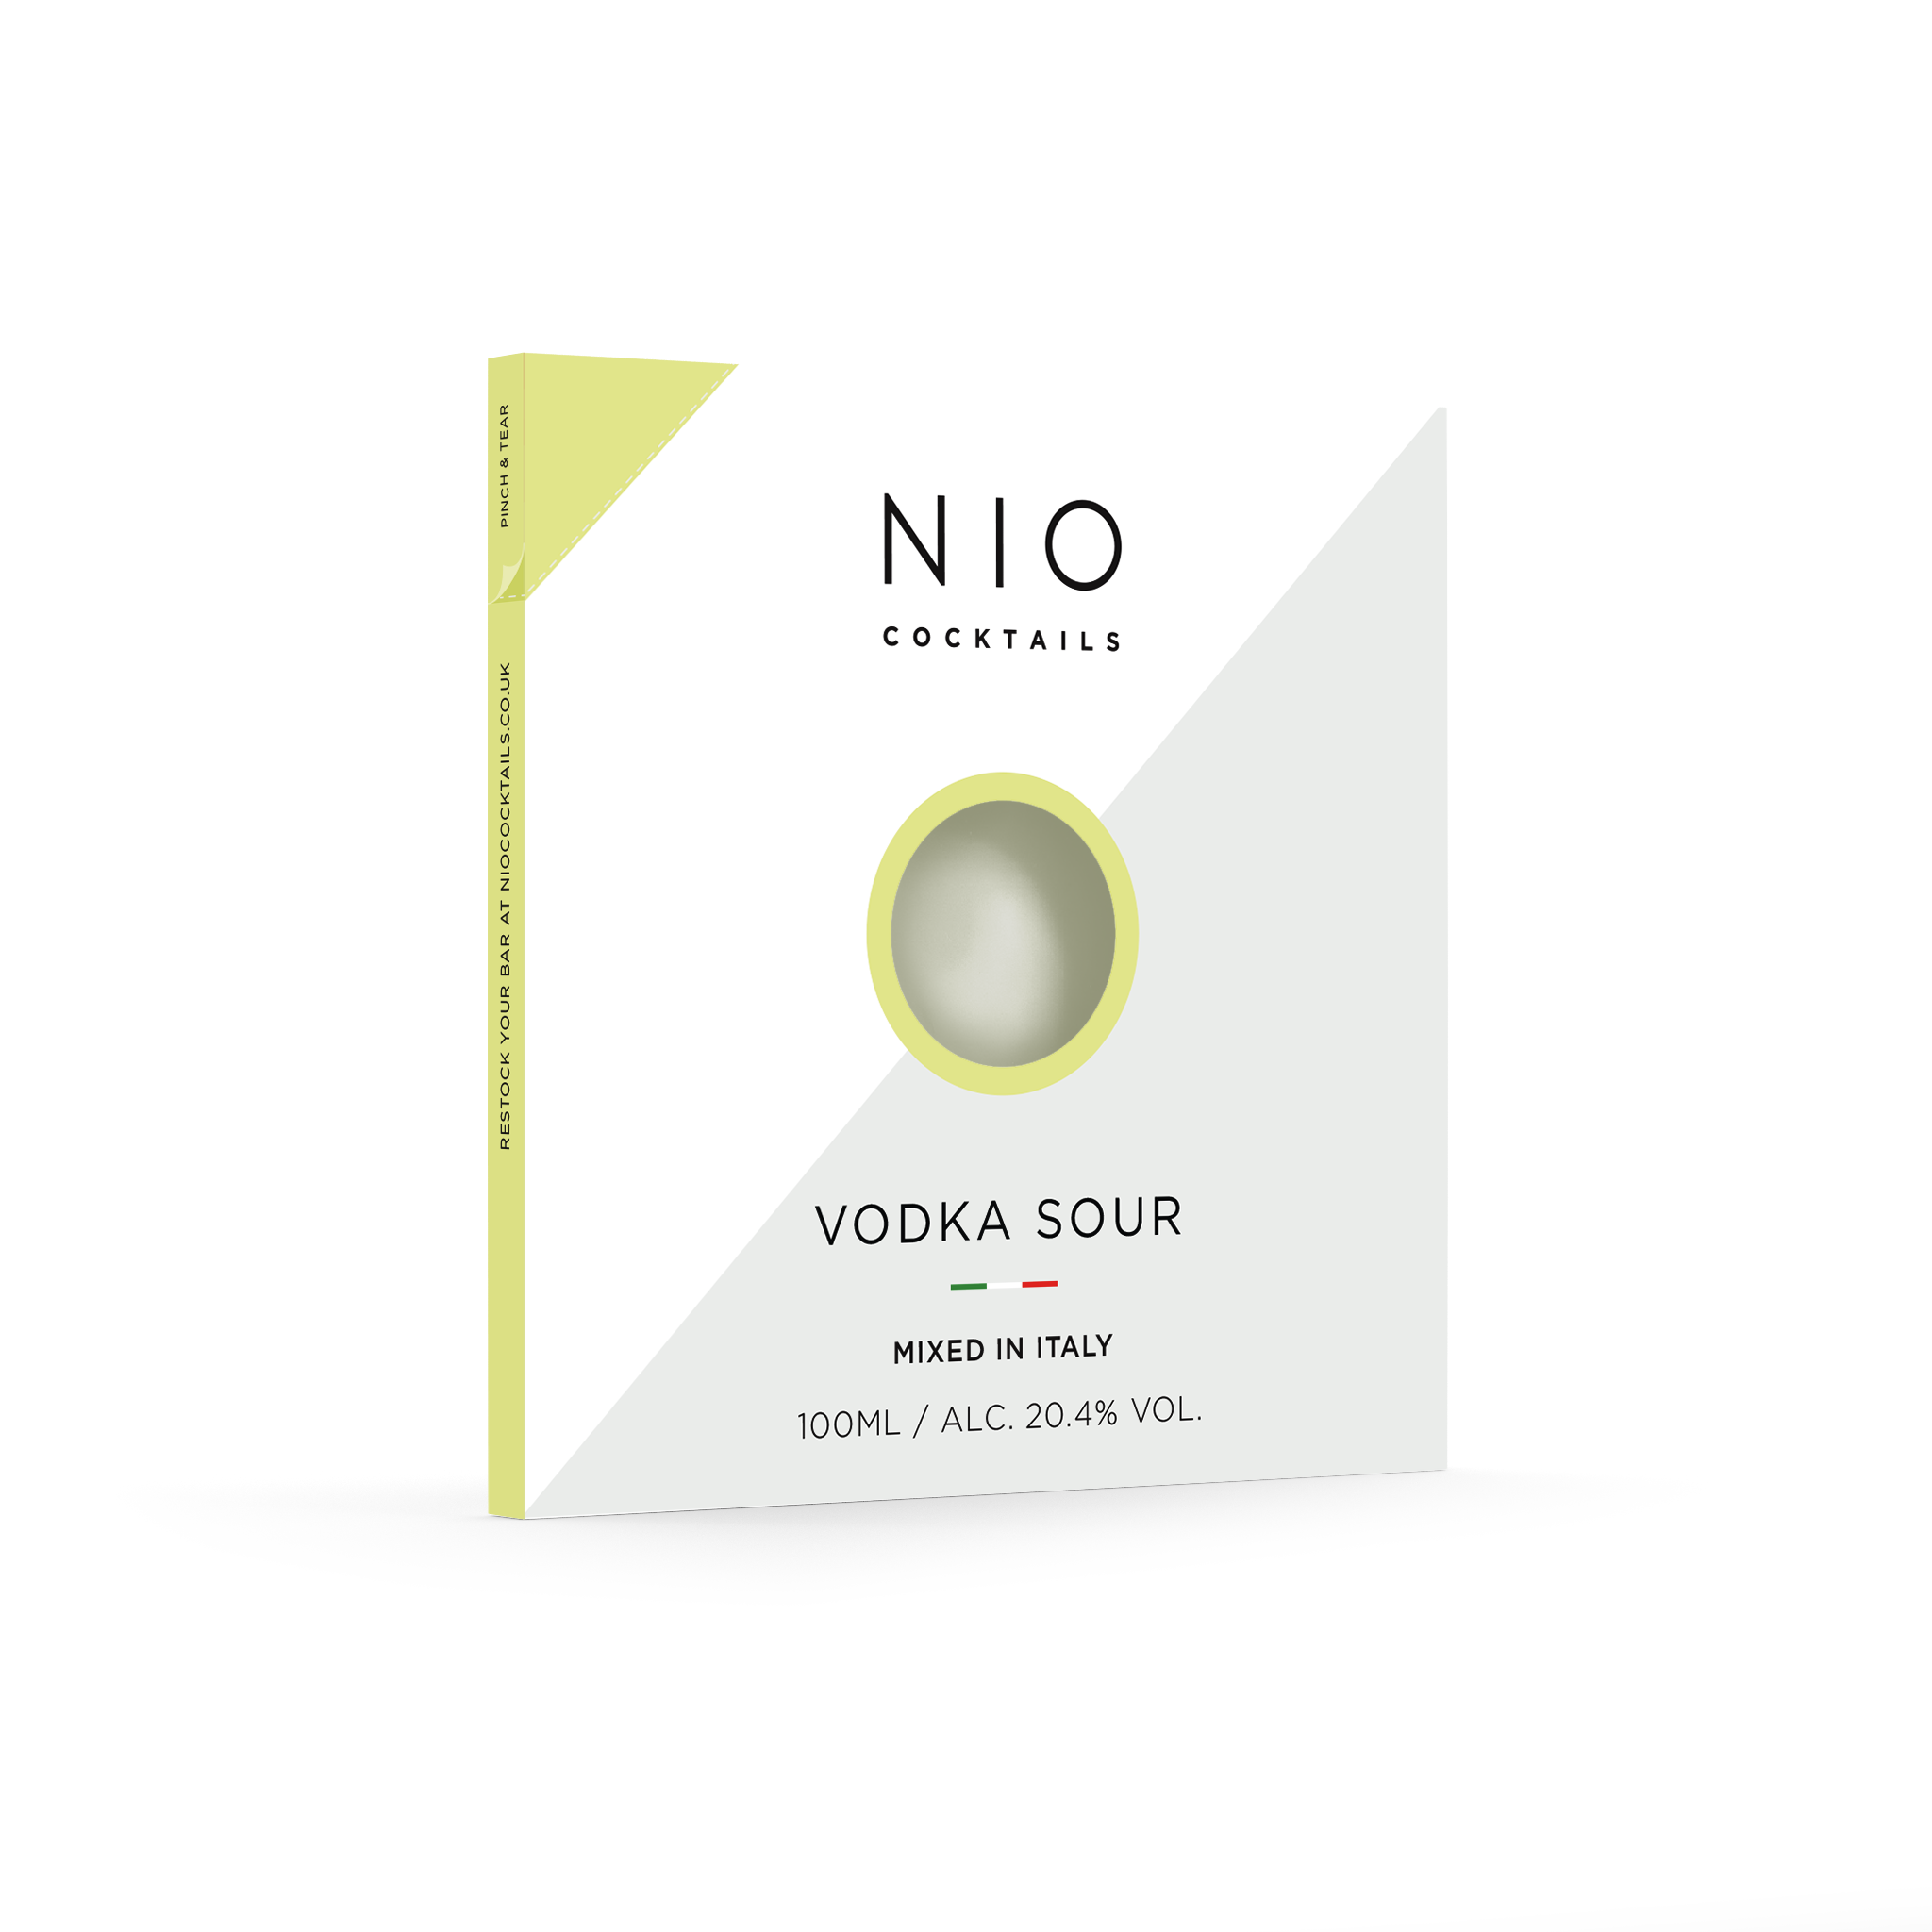 nio_cocktails_box_primavera_vodka_sour